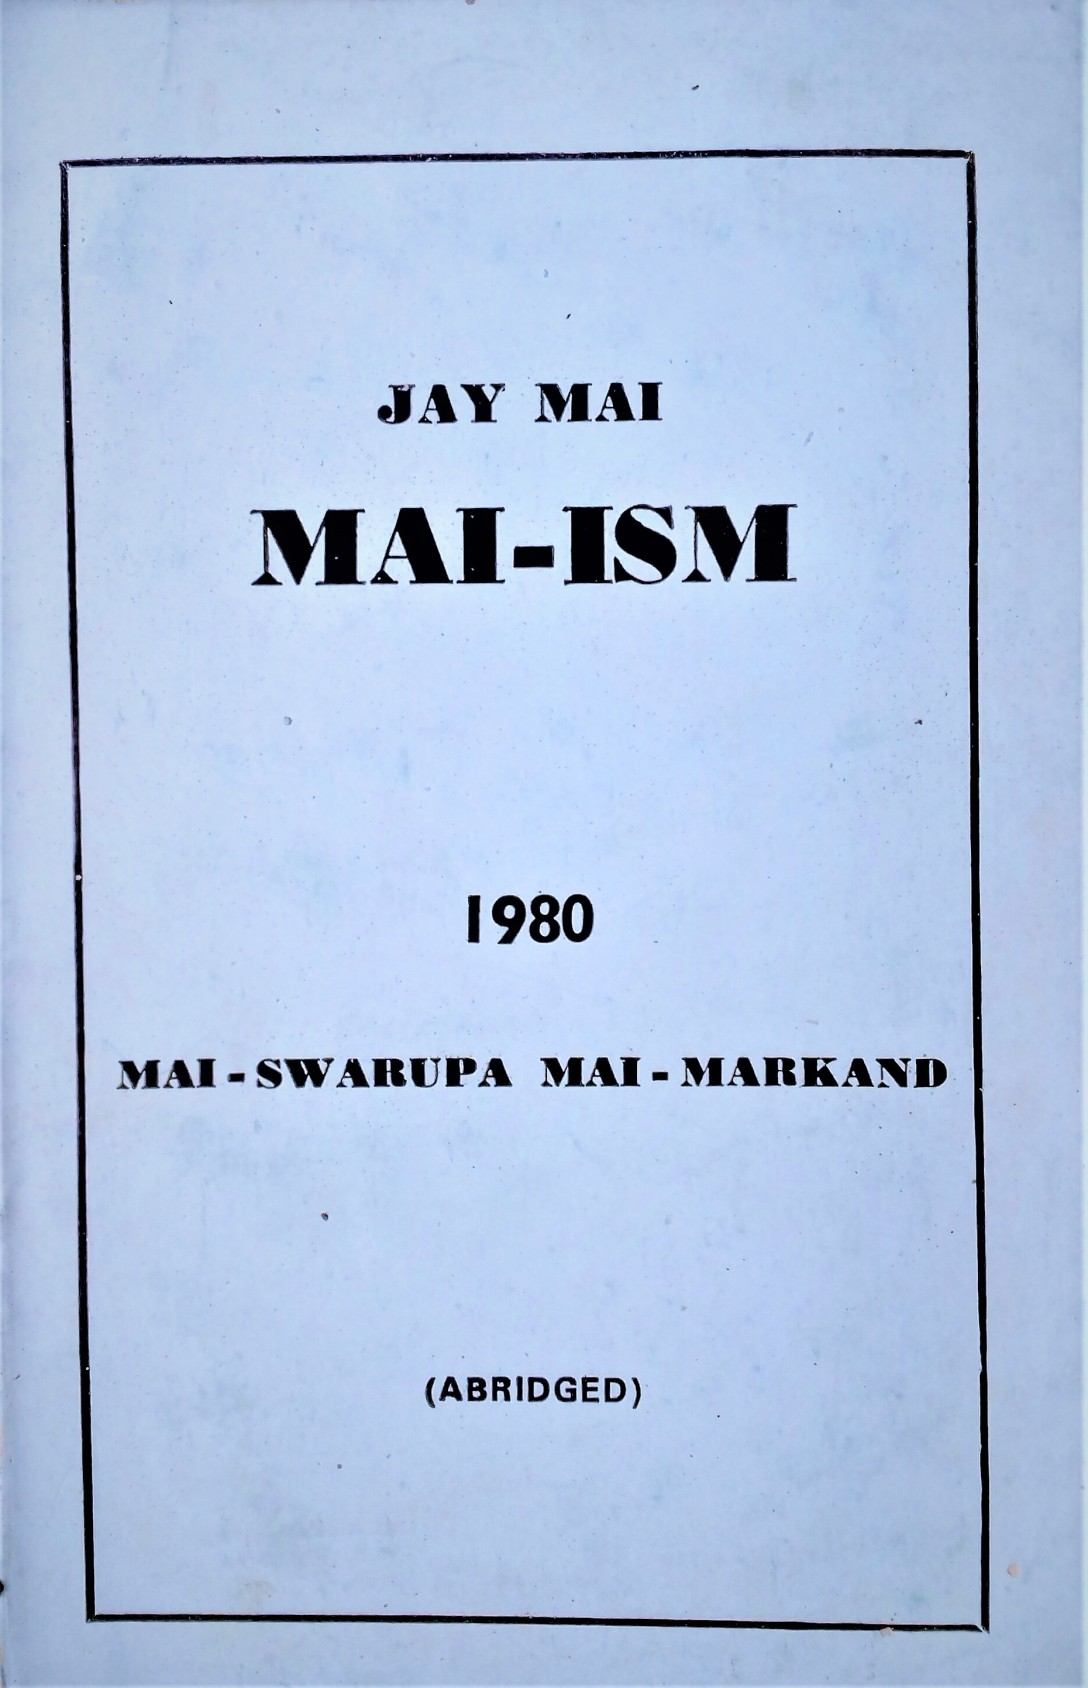 Abridged Maiism book